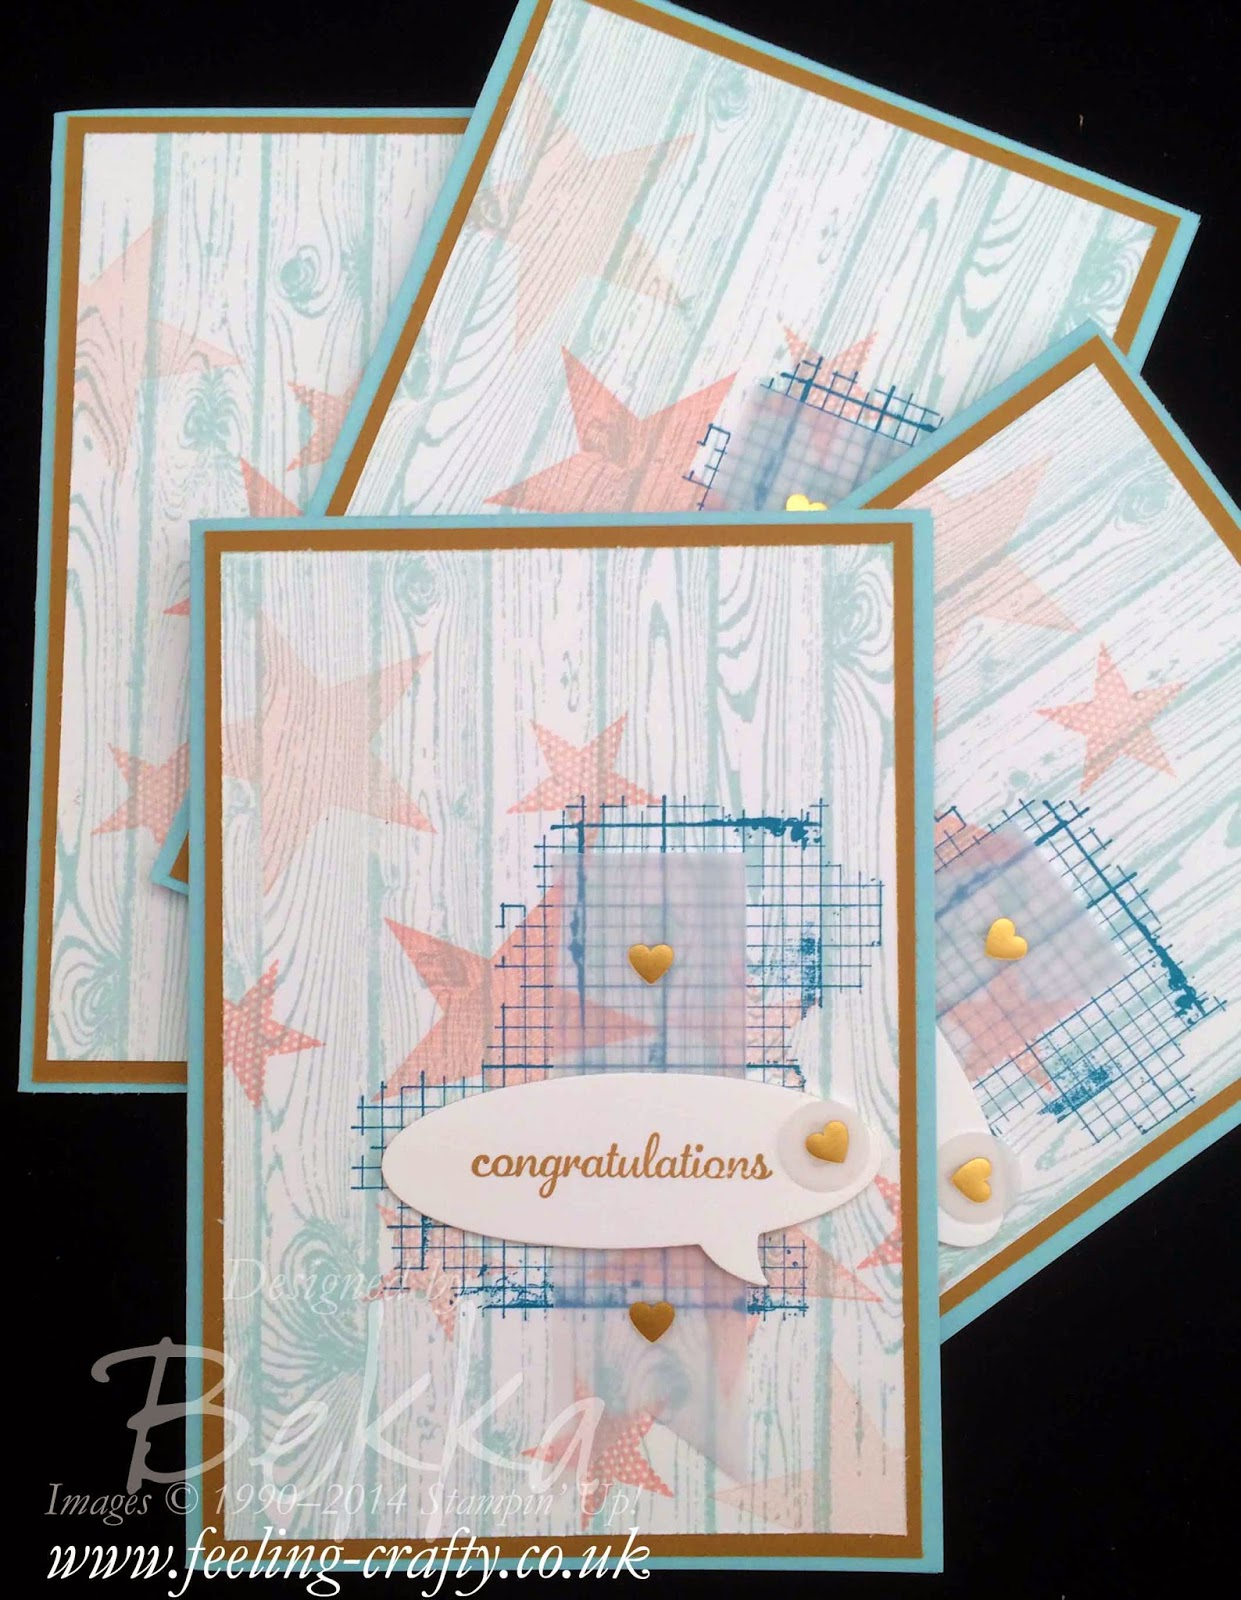 Congratulations Cards made with Stampin' Up! Supplies - check this blog for lots of great ideas